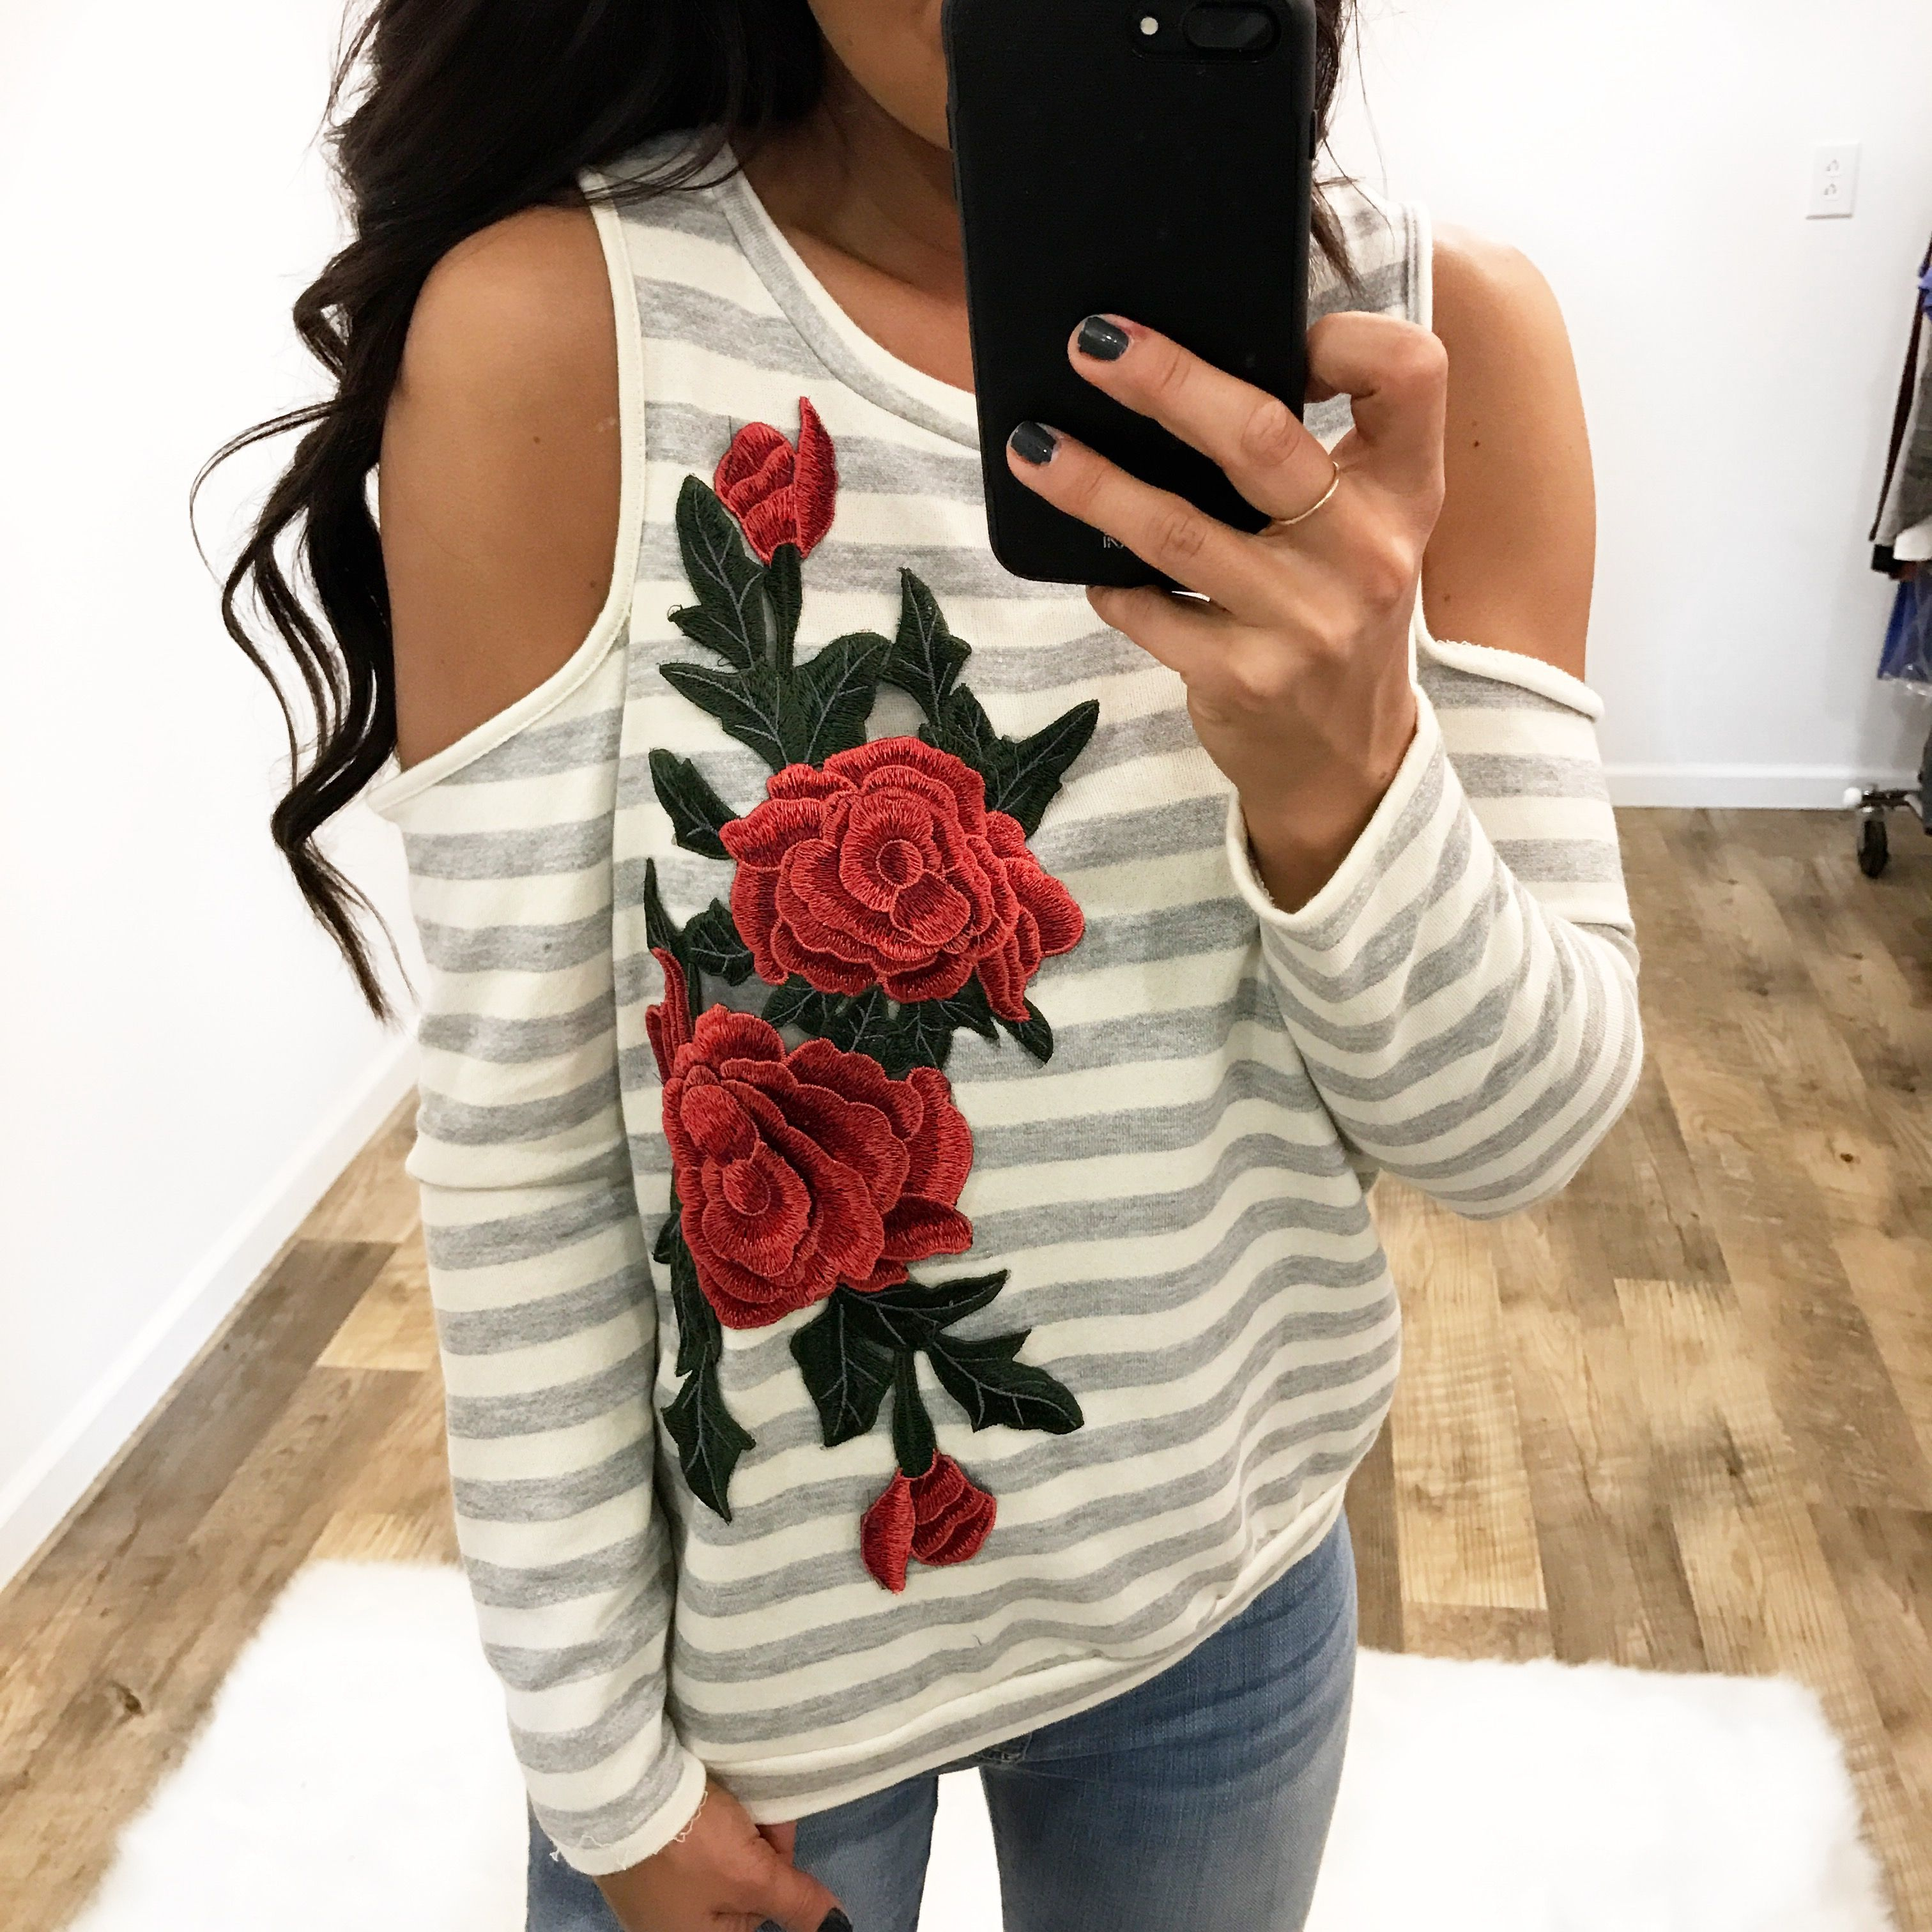 11cef7b2c6cc0d Sweet Love Floral Embroidery Detail Long Sleeve Cold Shoulder Top ...